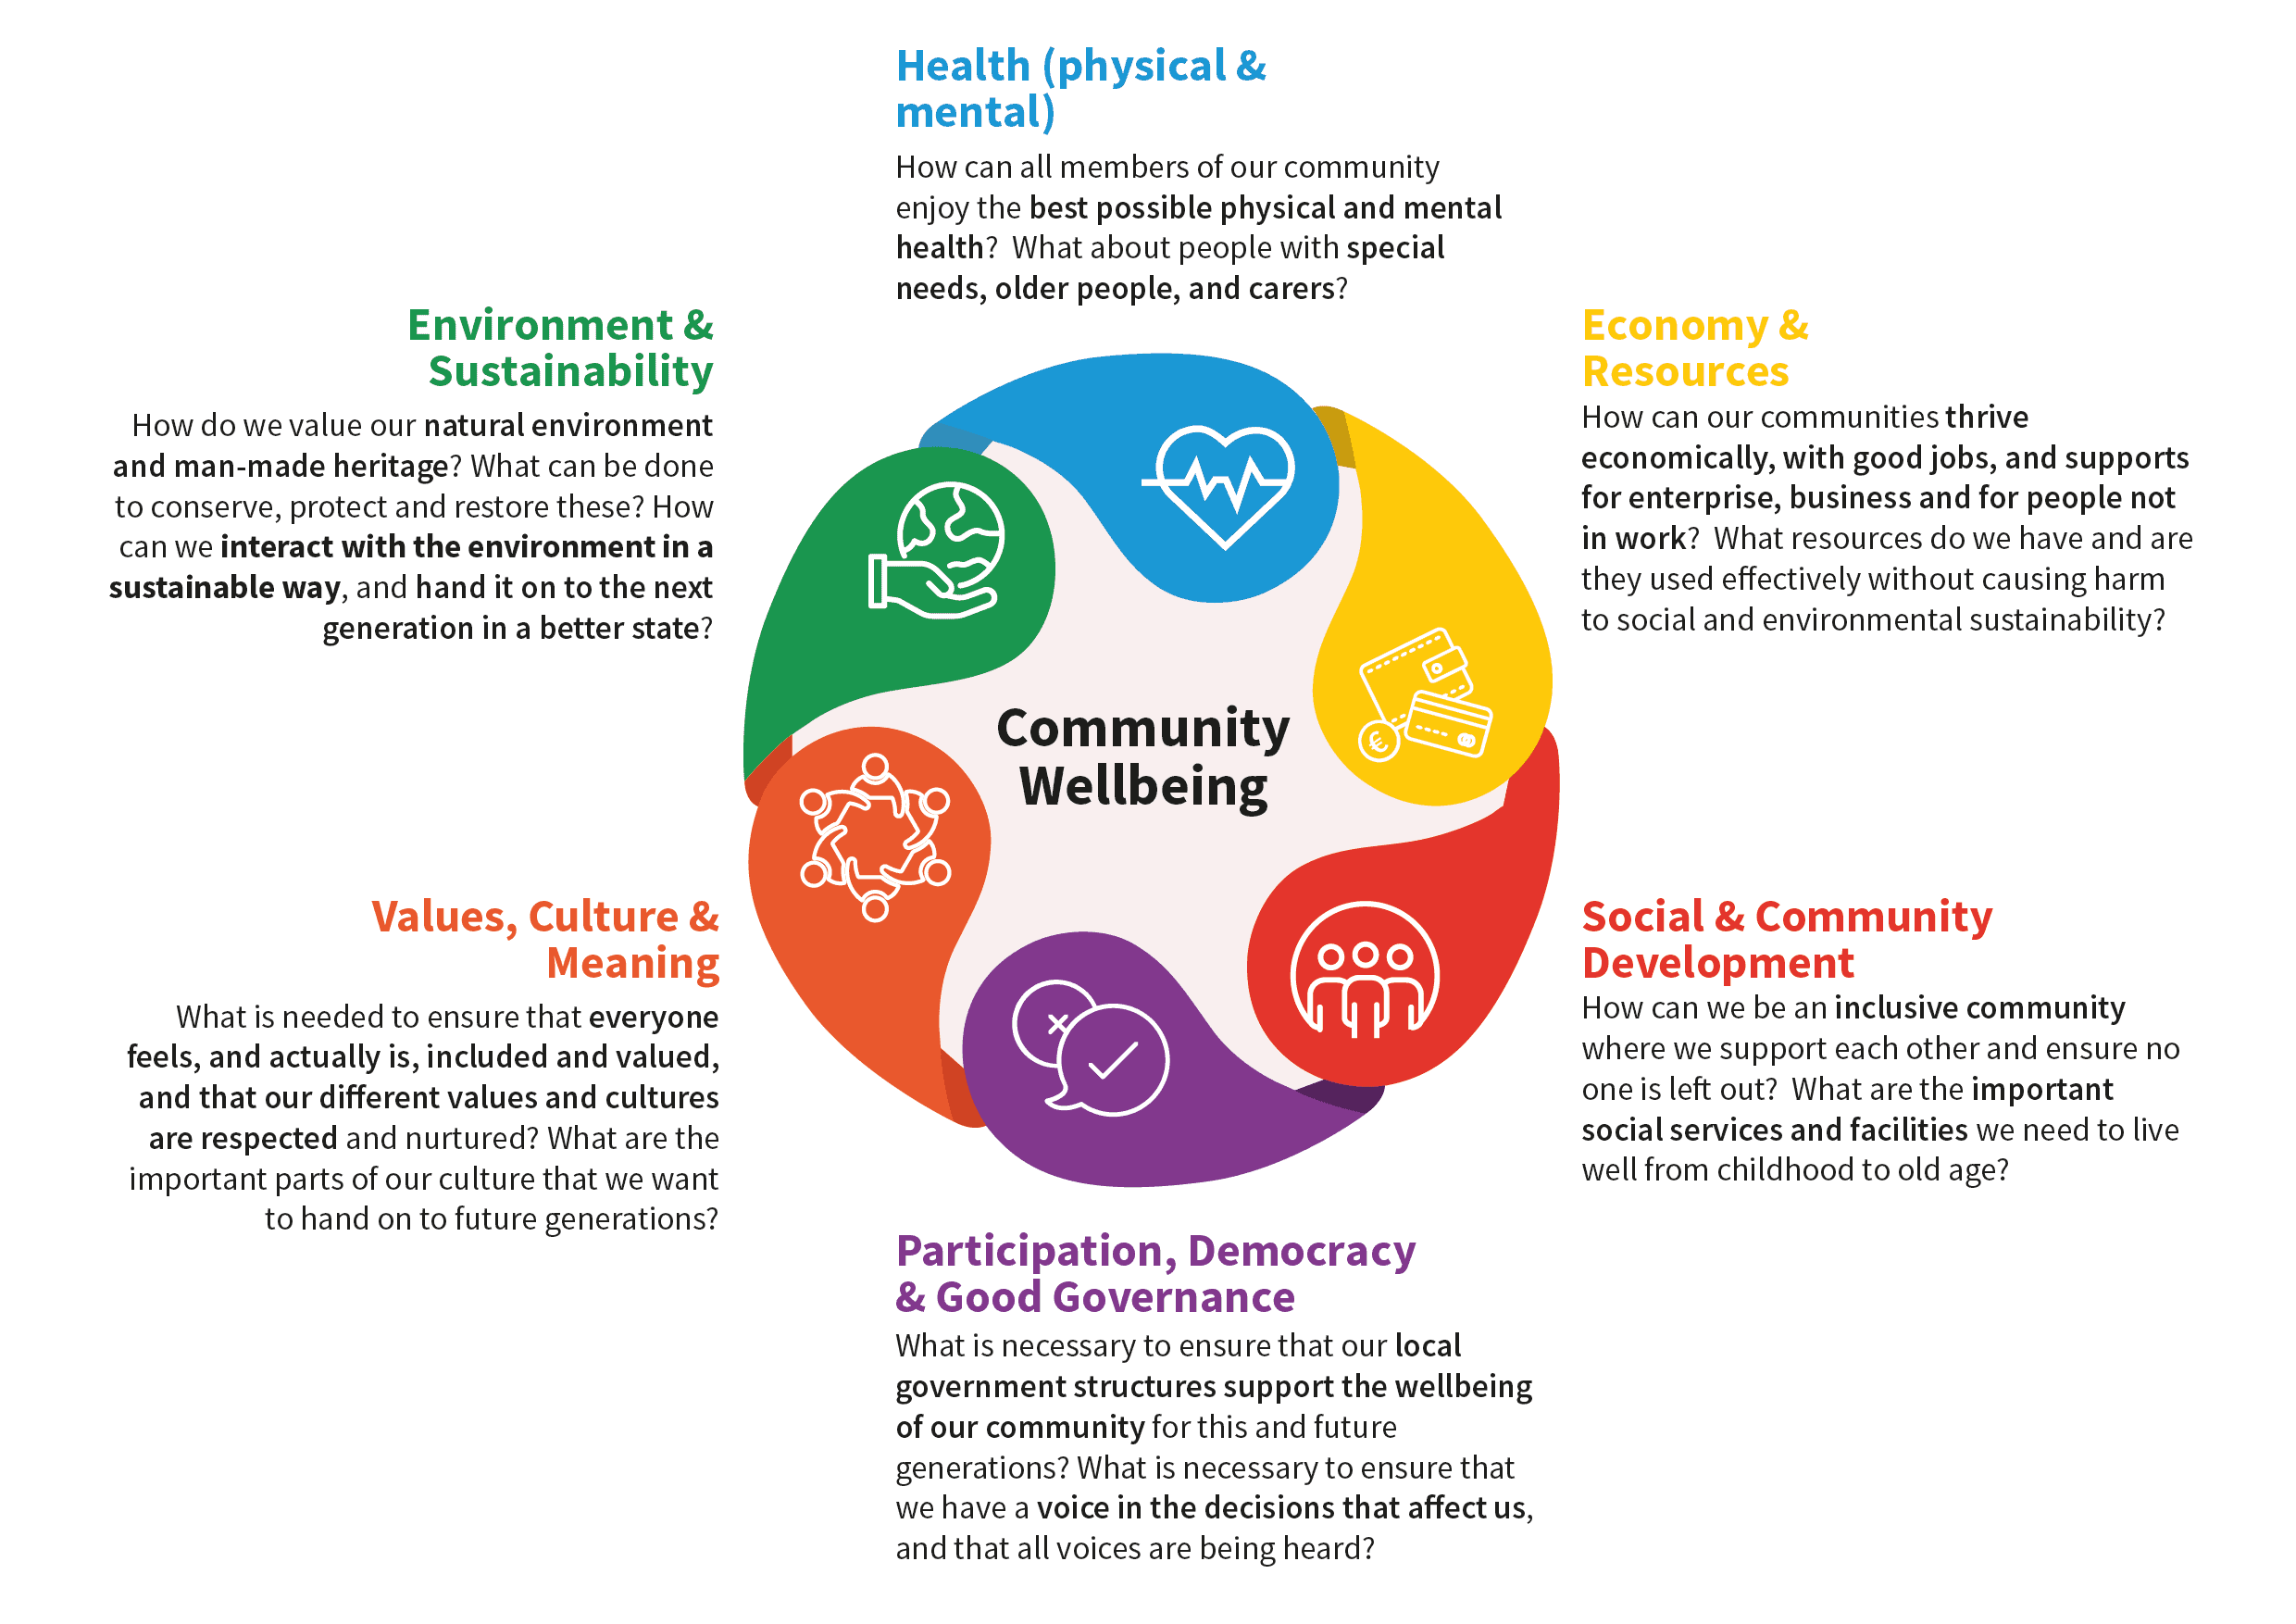 Workshops: A Future Community Wellbeing Vision for County Monaghan